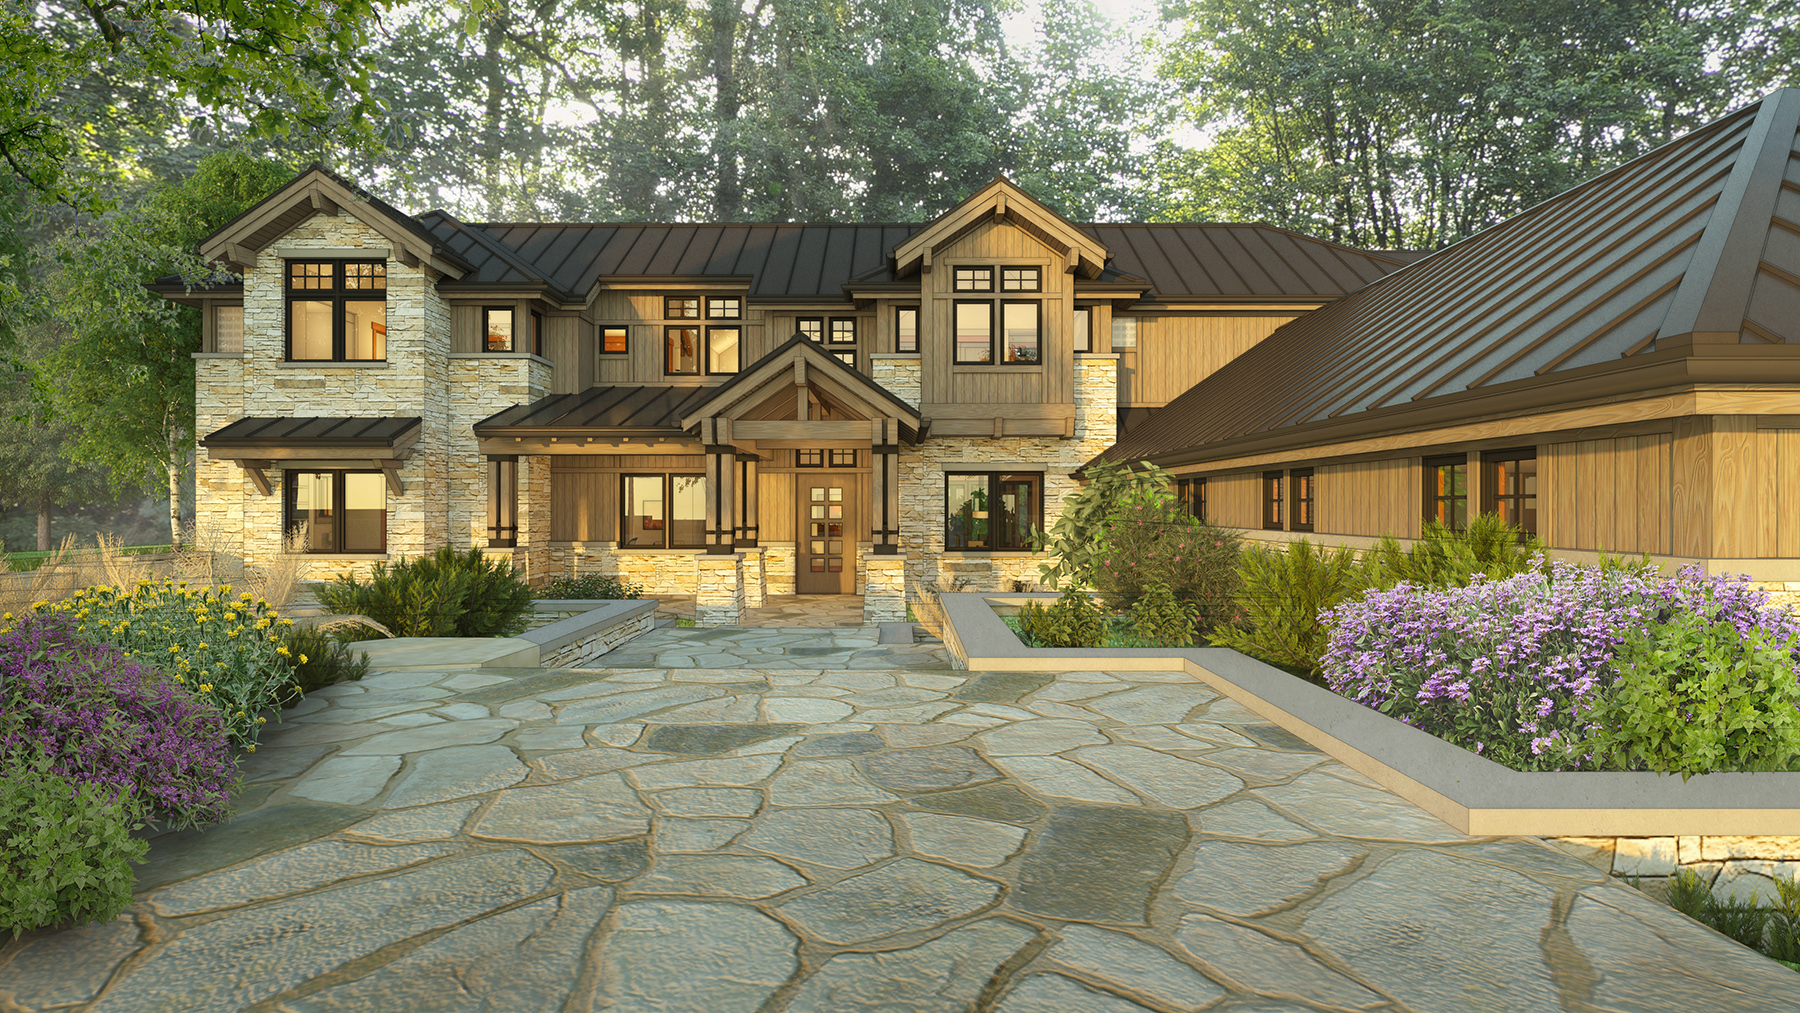 Josh white custom homes contemporary craftsman for Modern craftsman